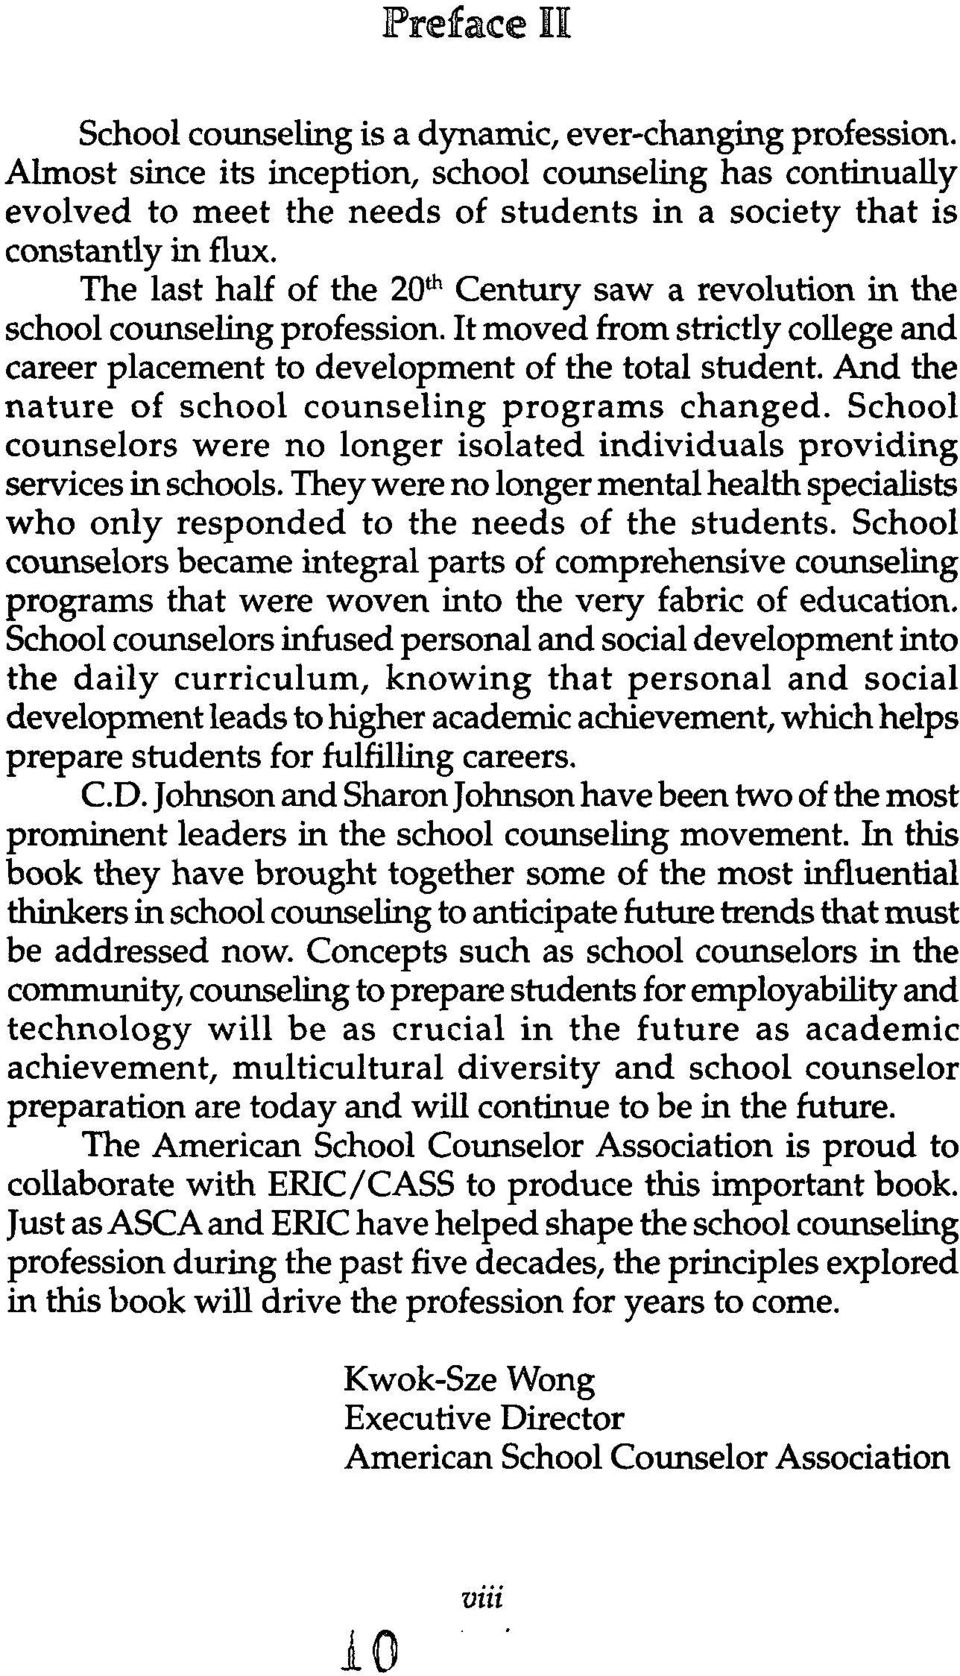 And the nature of school counseling programs changed. School counselors were no longer isolated individuals providing services in schools.